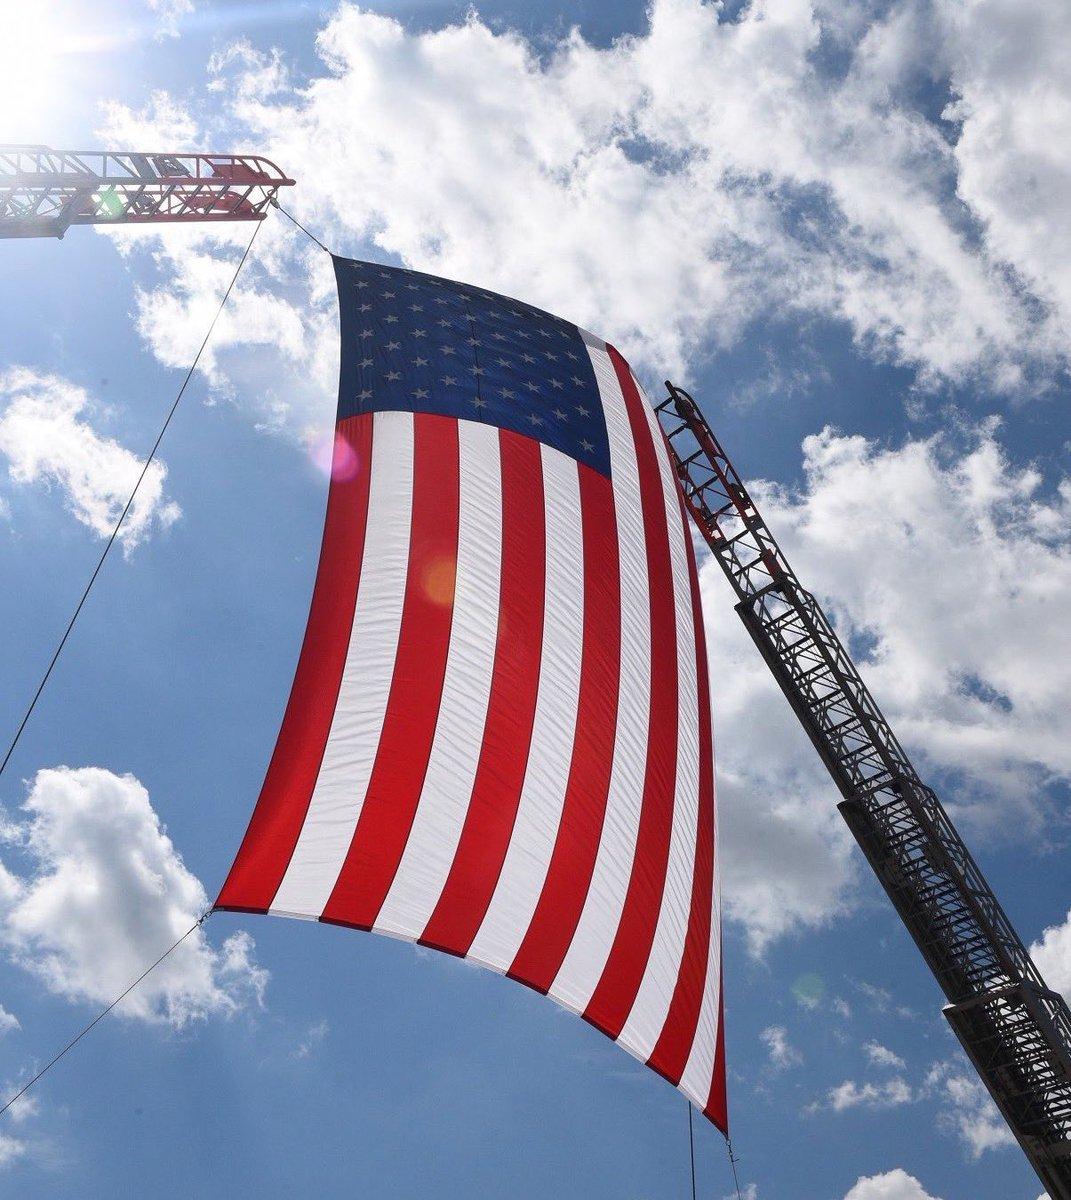 Today we remember, with tremendous gratitude, all those who made the Supreme Sacrifice in service to our country.